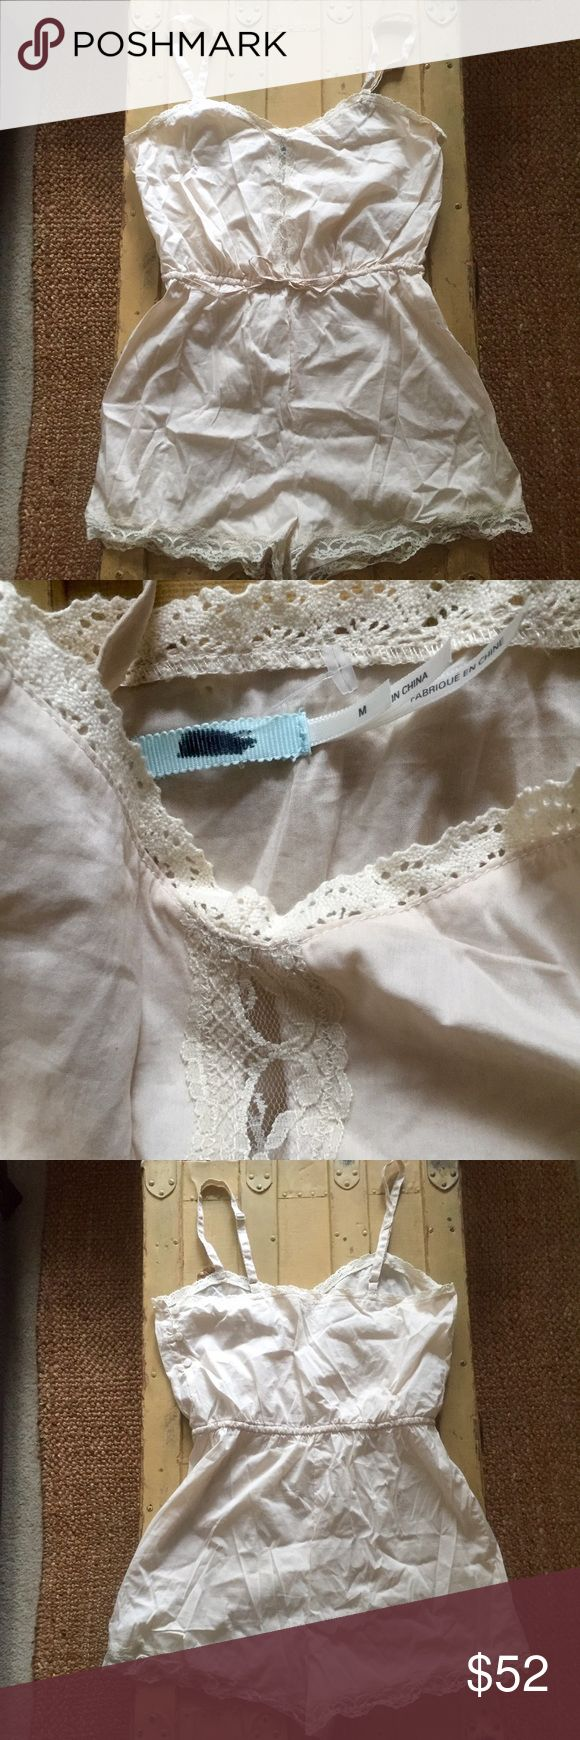 NWOT URBAN OUTFITT KIMICHI BLUE CROC LACE ROMPER M NWOT URBAN OUTFITTERS KIMICHI BLUE BRAND CREAM CROCHET LACE ADJUSTABLE CINCH WAIST ROMPER WMNS SZ M $78 100% Authentic URBAN OUTFITTERS KIMICHI BLUE BRAND Size: WOMENS size M (REG) Color: Cream Condition:  New without tags, store display; tag has been marked through to prevent store return;*see photos for specific detail Material: 65% cotton, 32% nylon, 3% spandex RN number: 66170 Combined shipping discount with purchase of additional items…